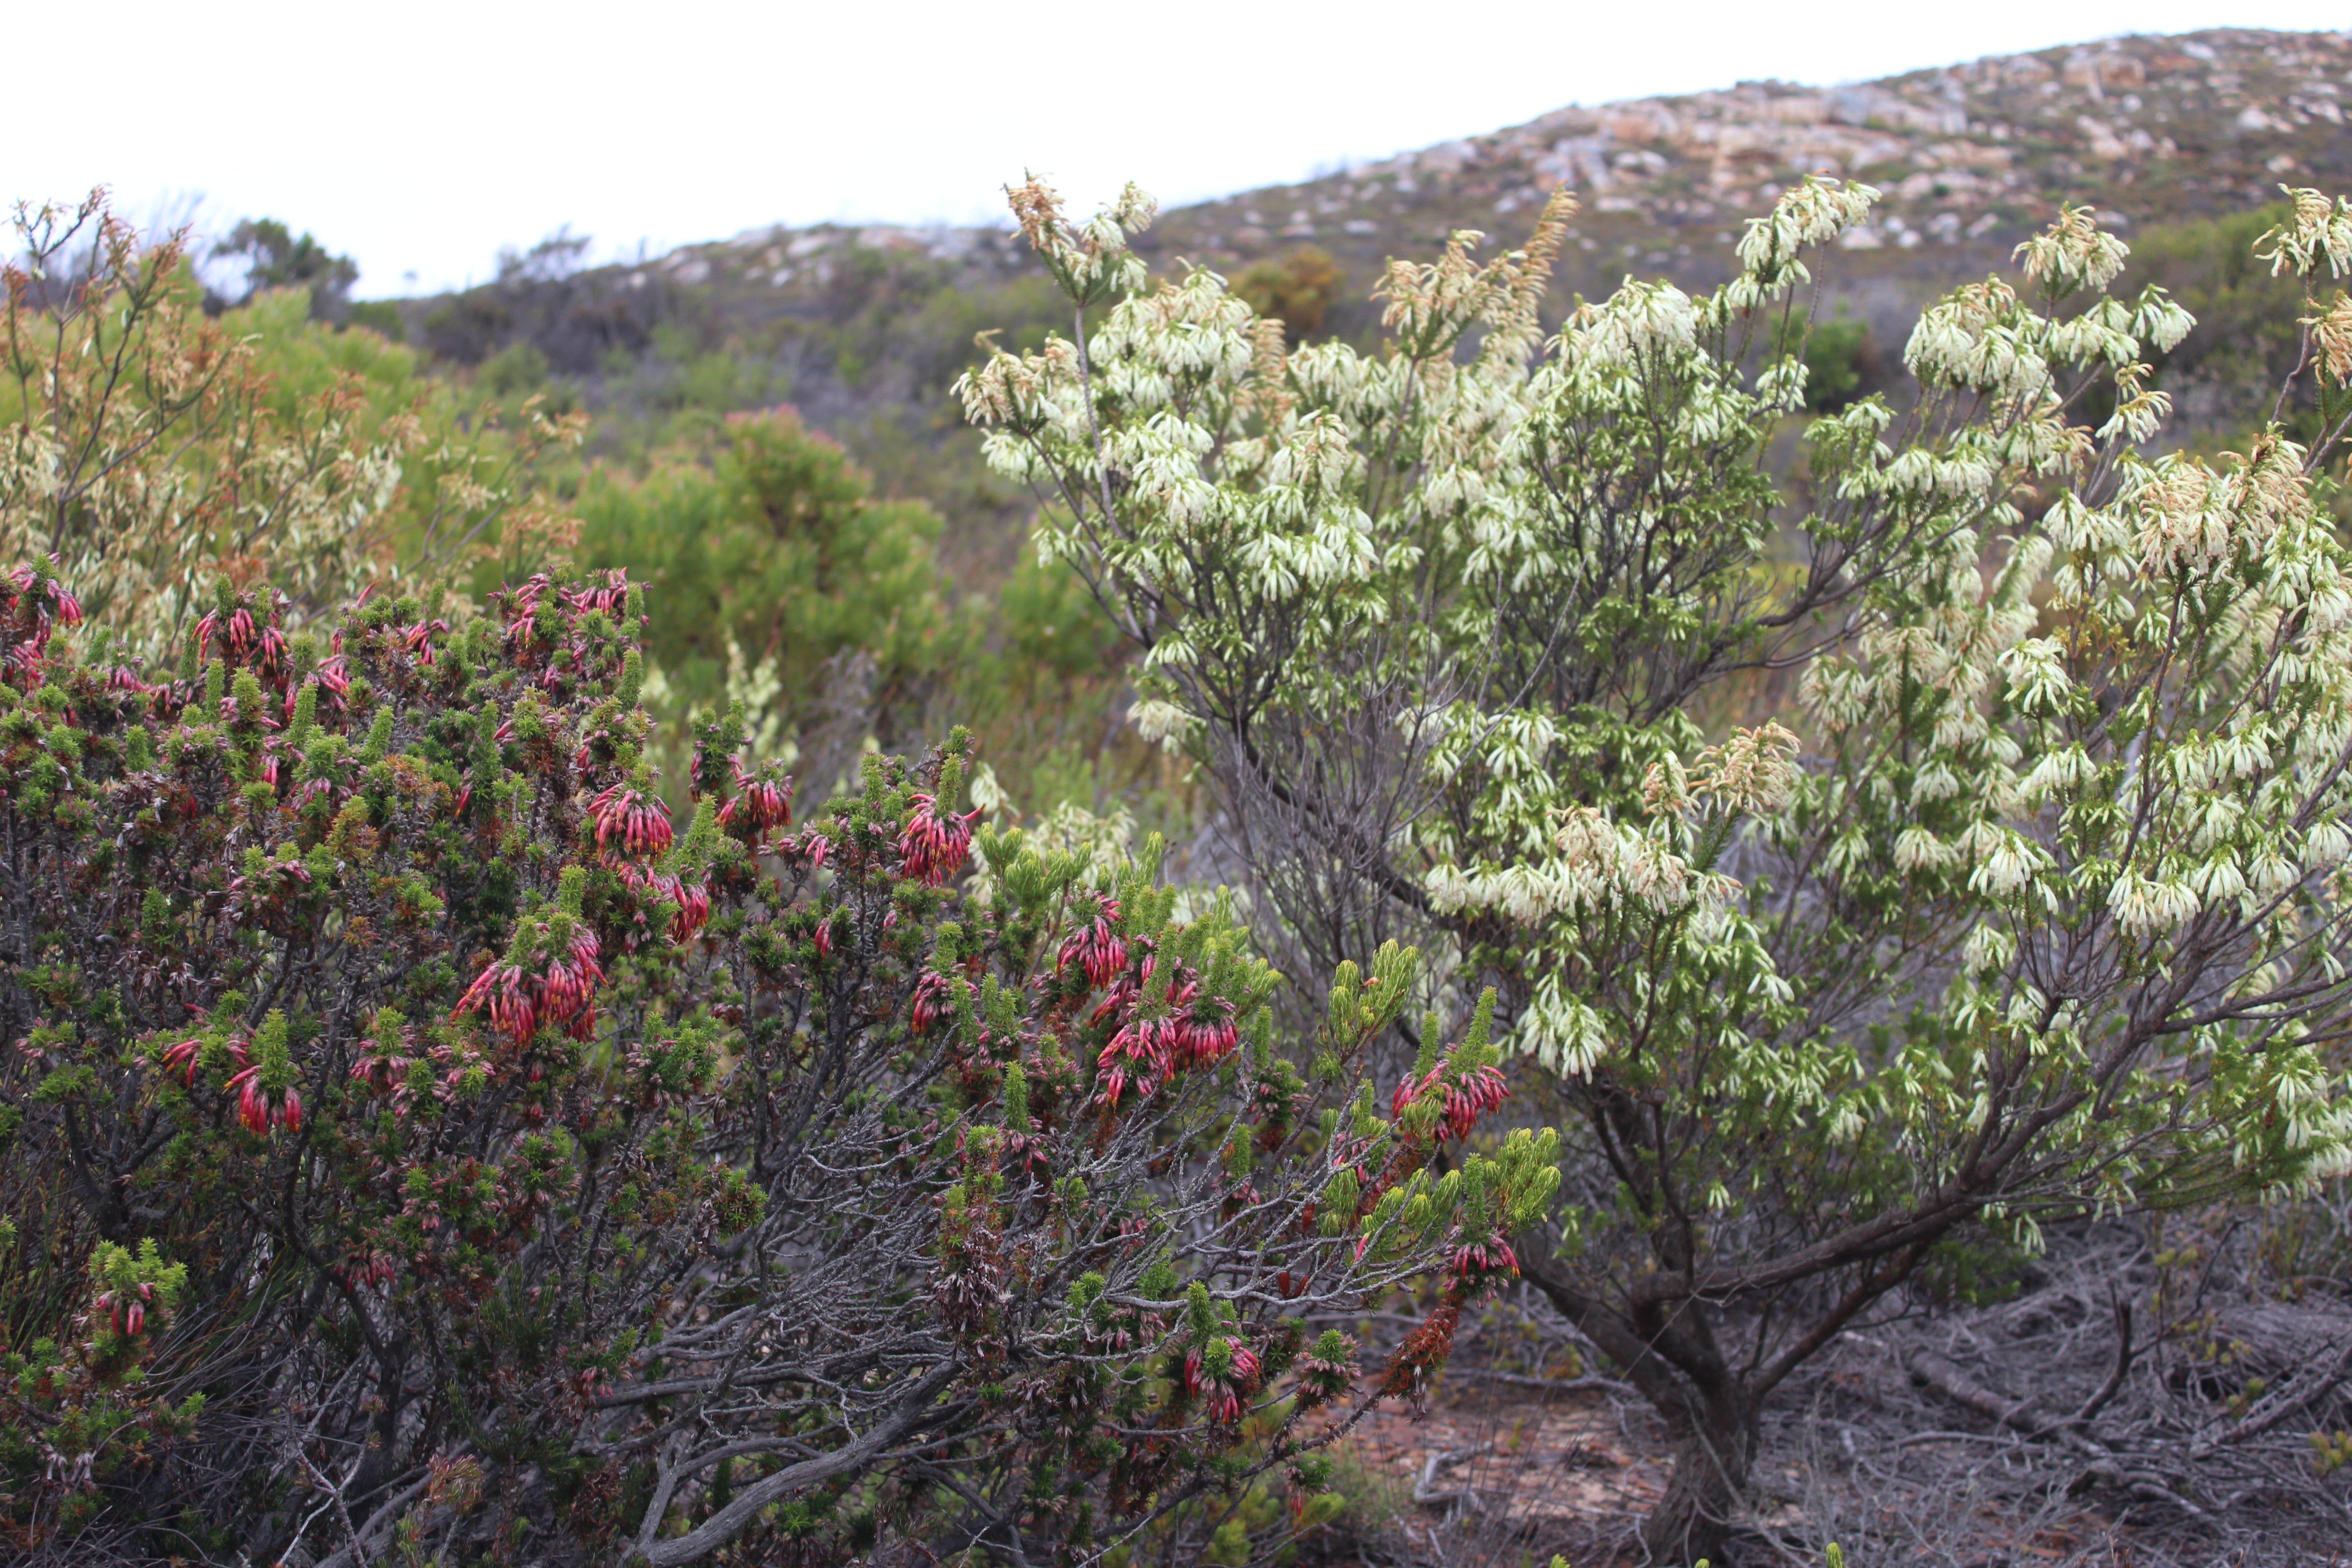 Erica coccinea and Erica mammosa co-occur at the Cape of Good Hope section of Table Mountain National Park and share a pollinator species.